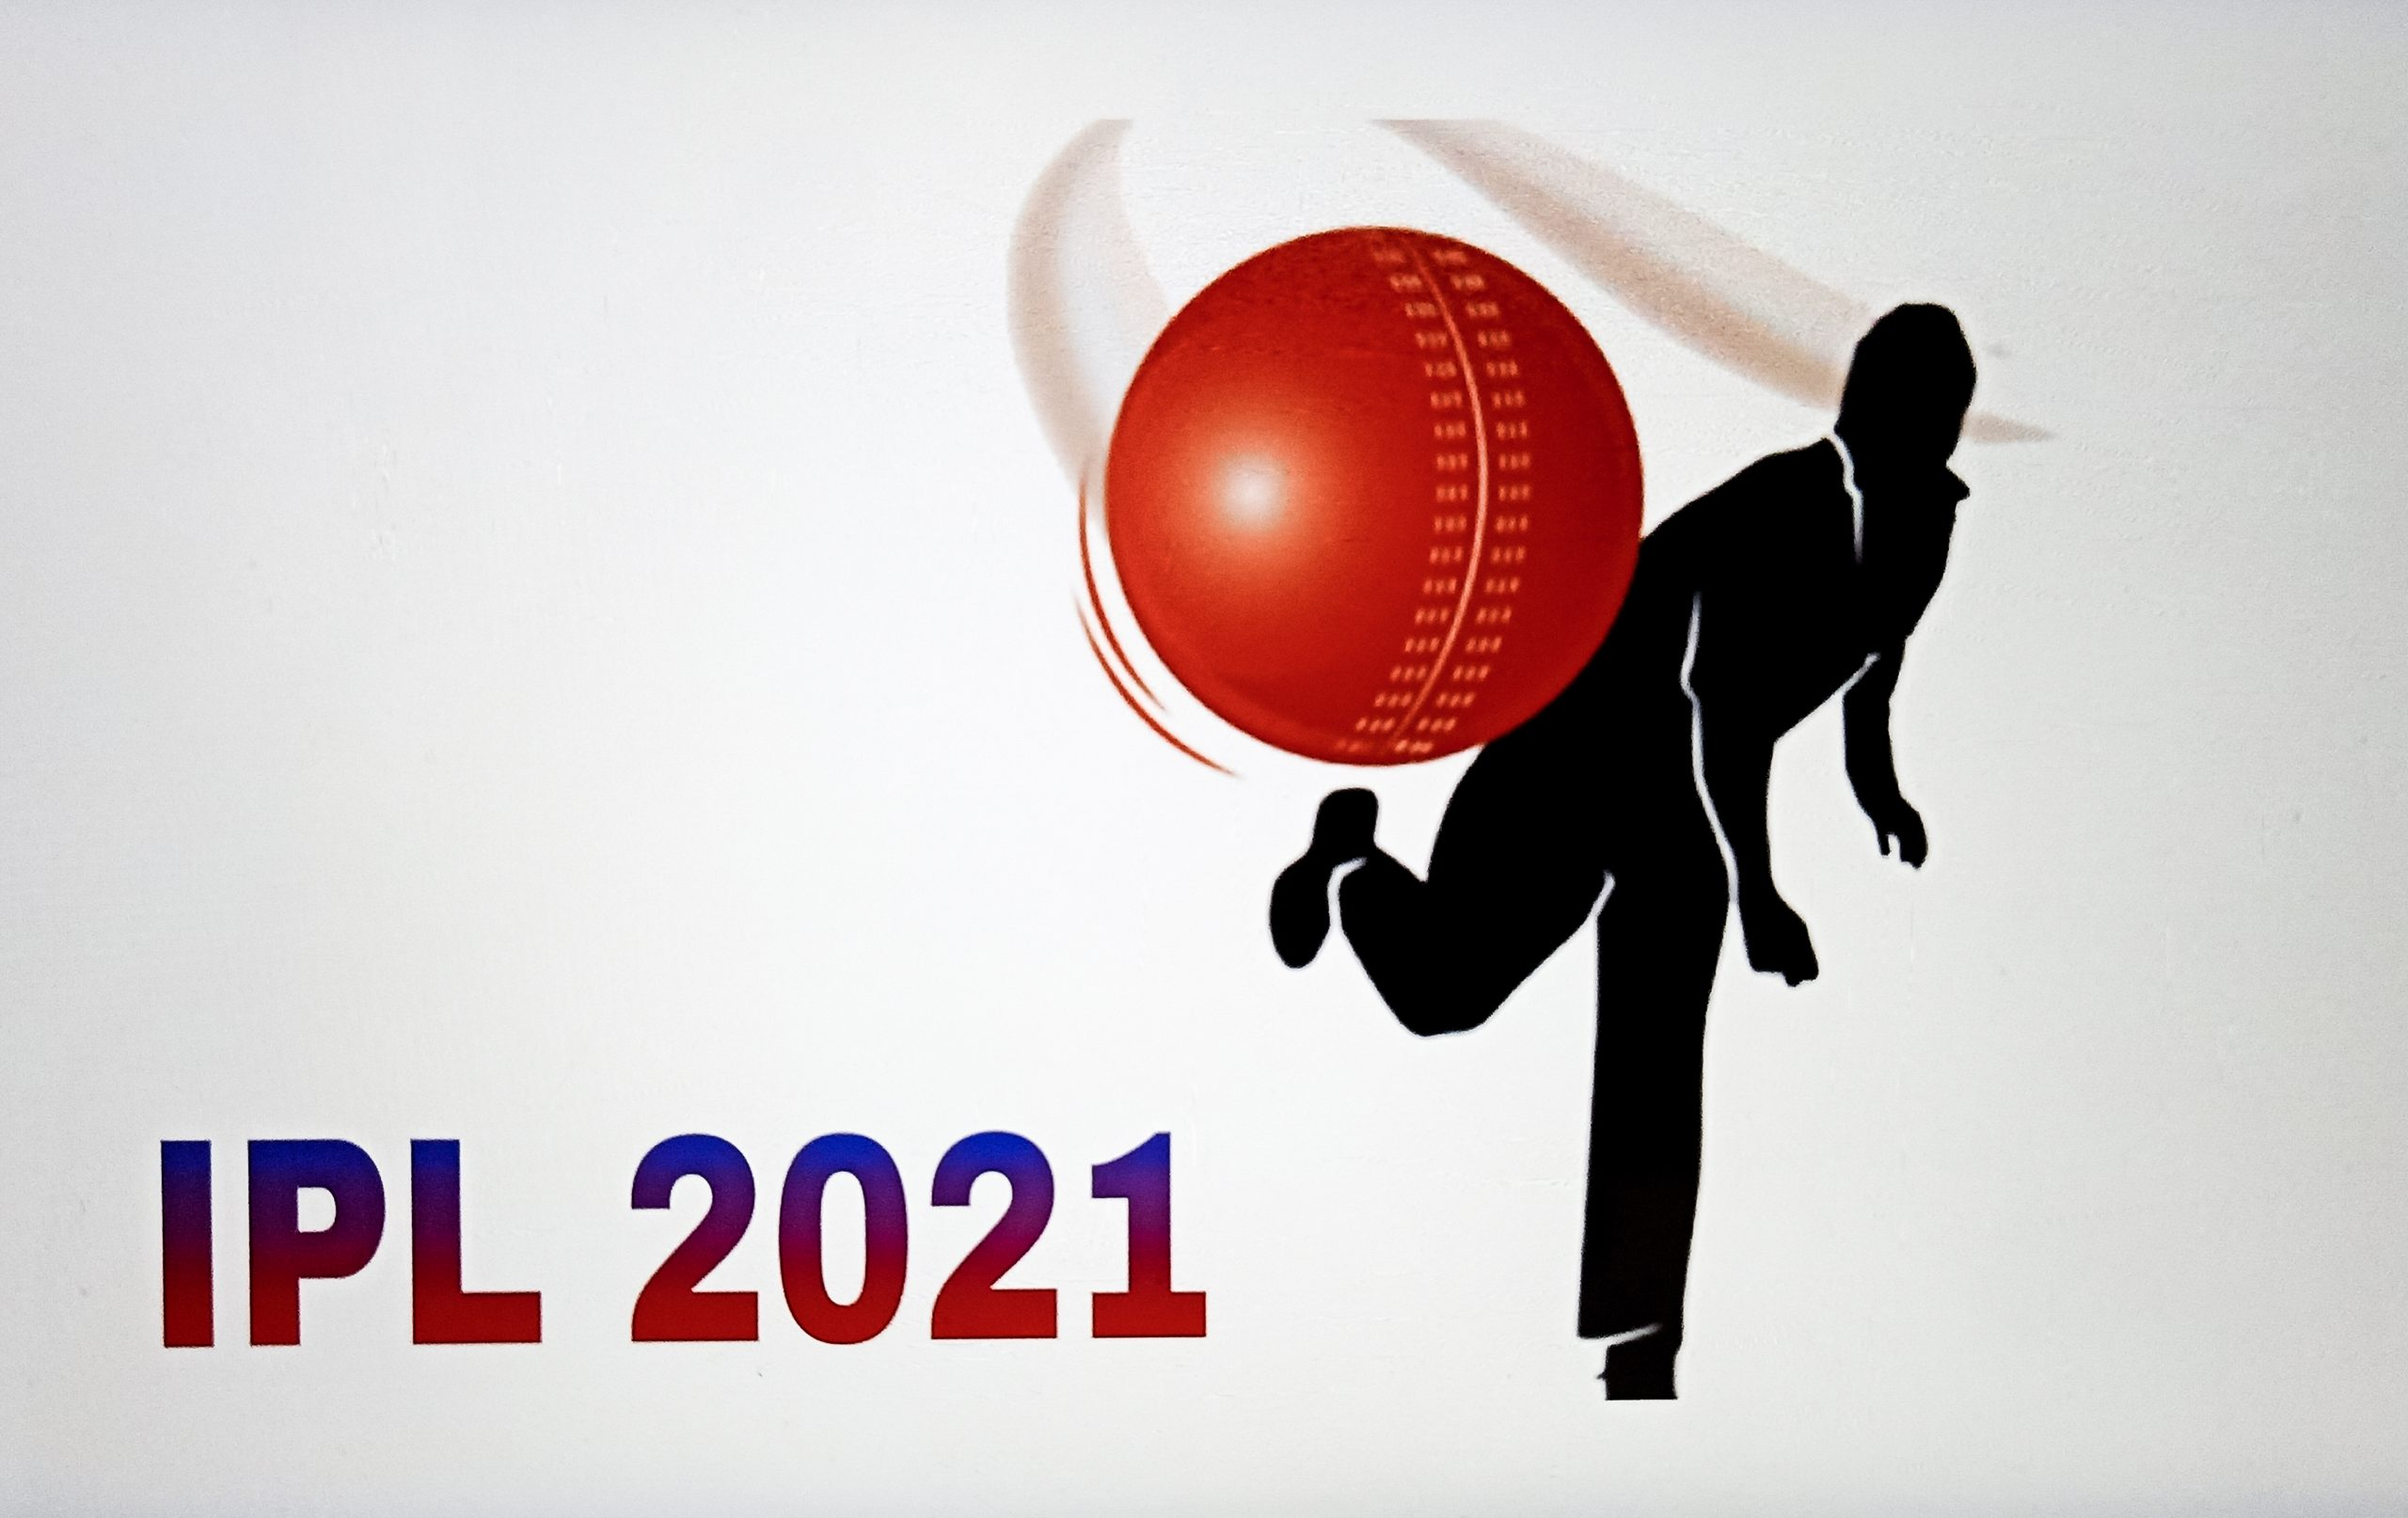 IPL 2021 Illustration